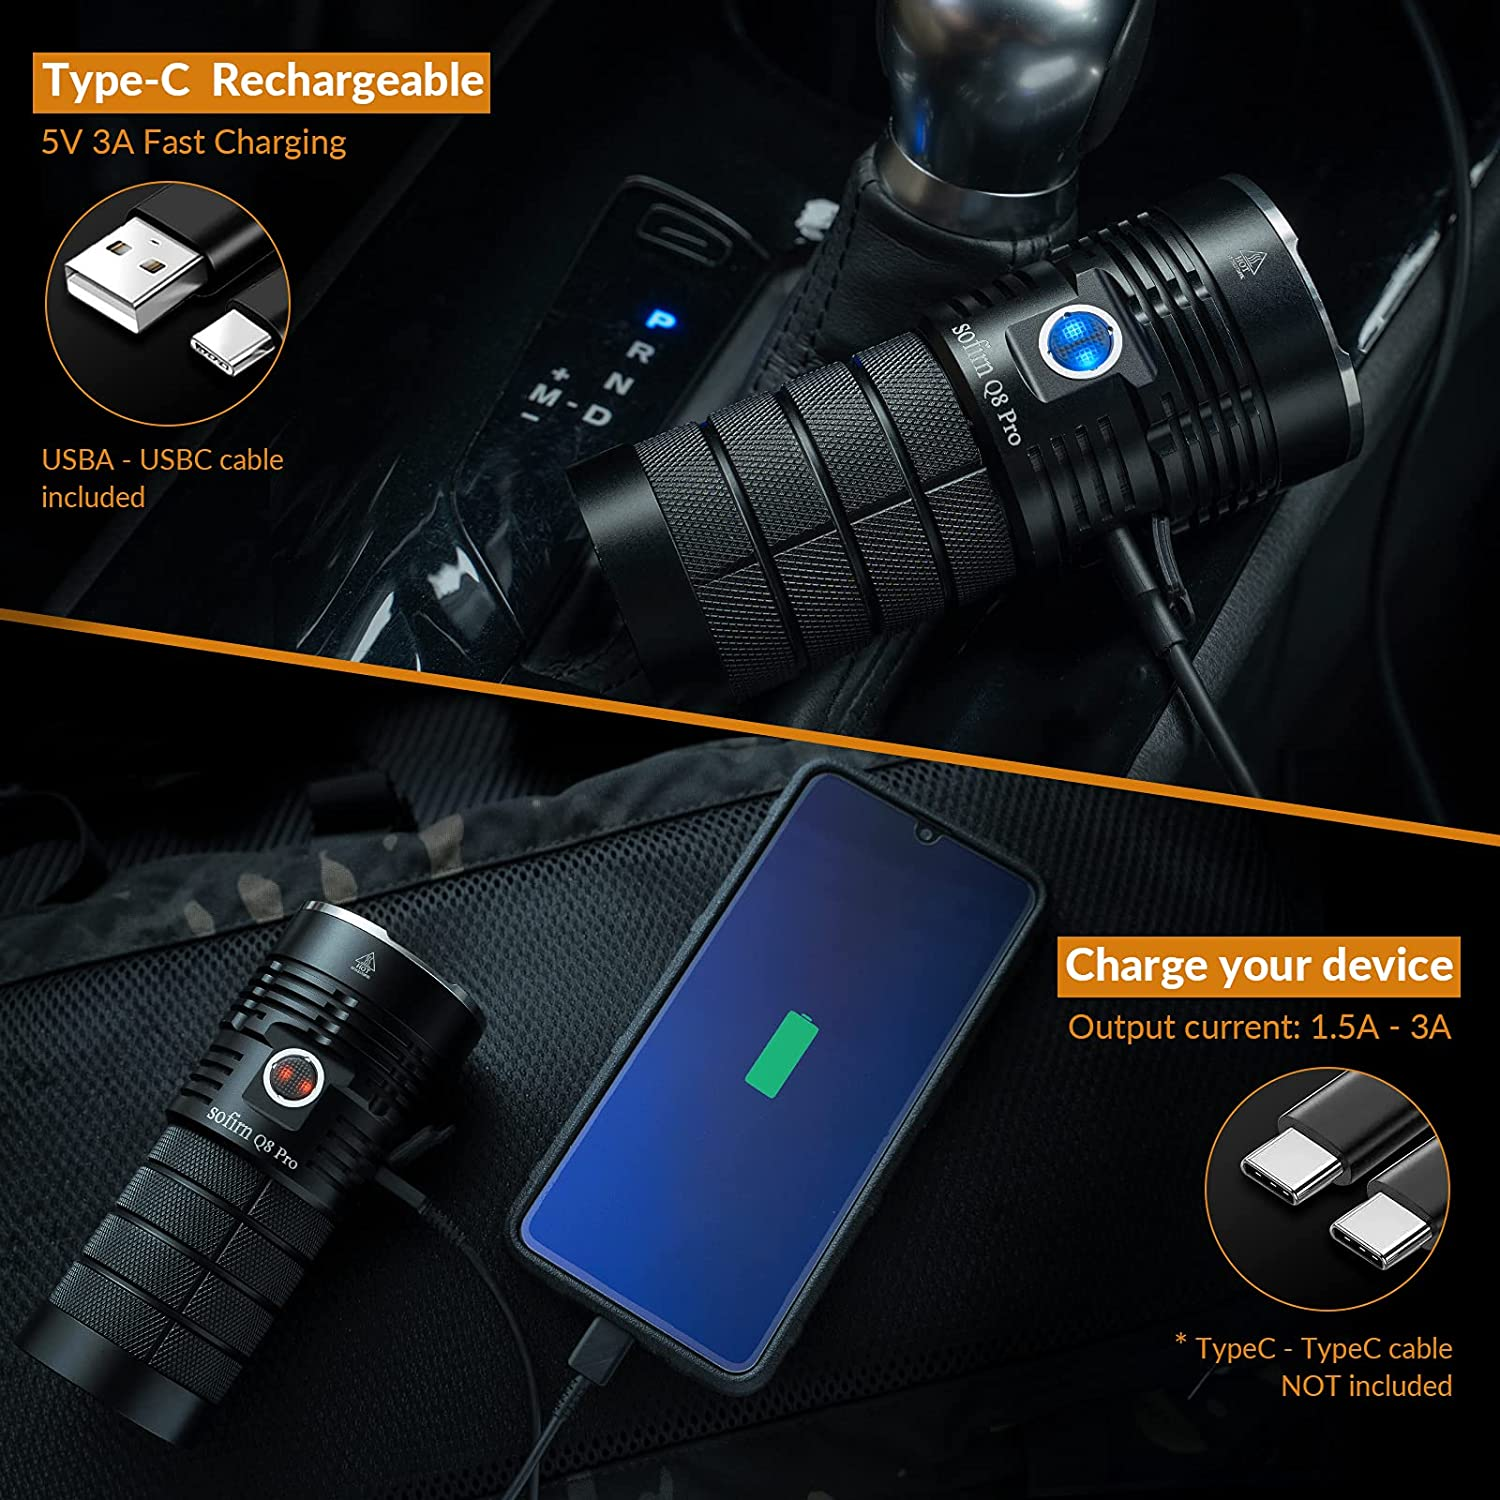 Power bank feature